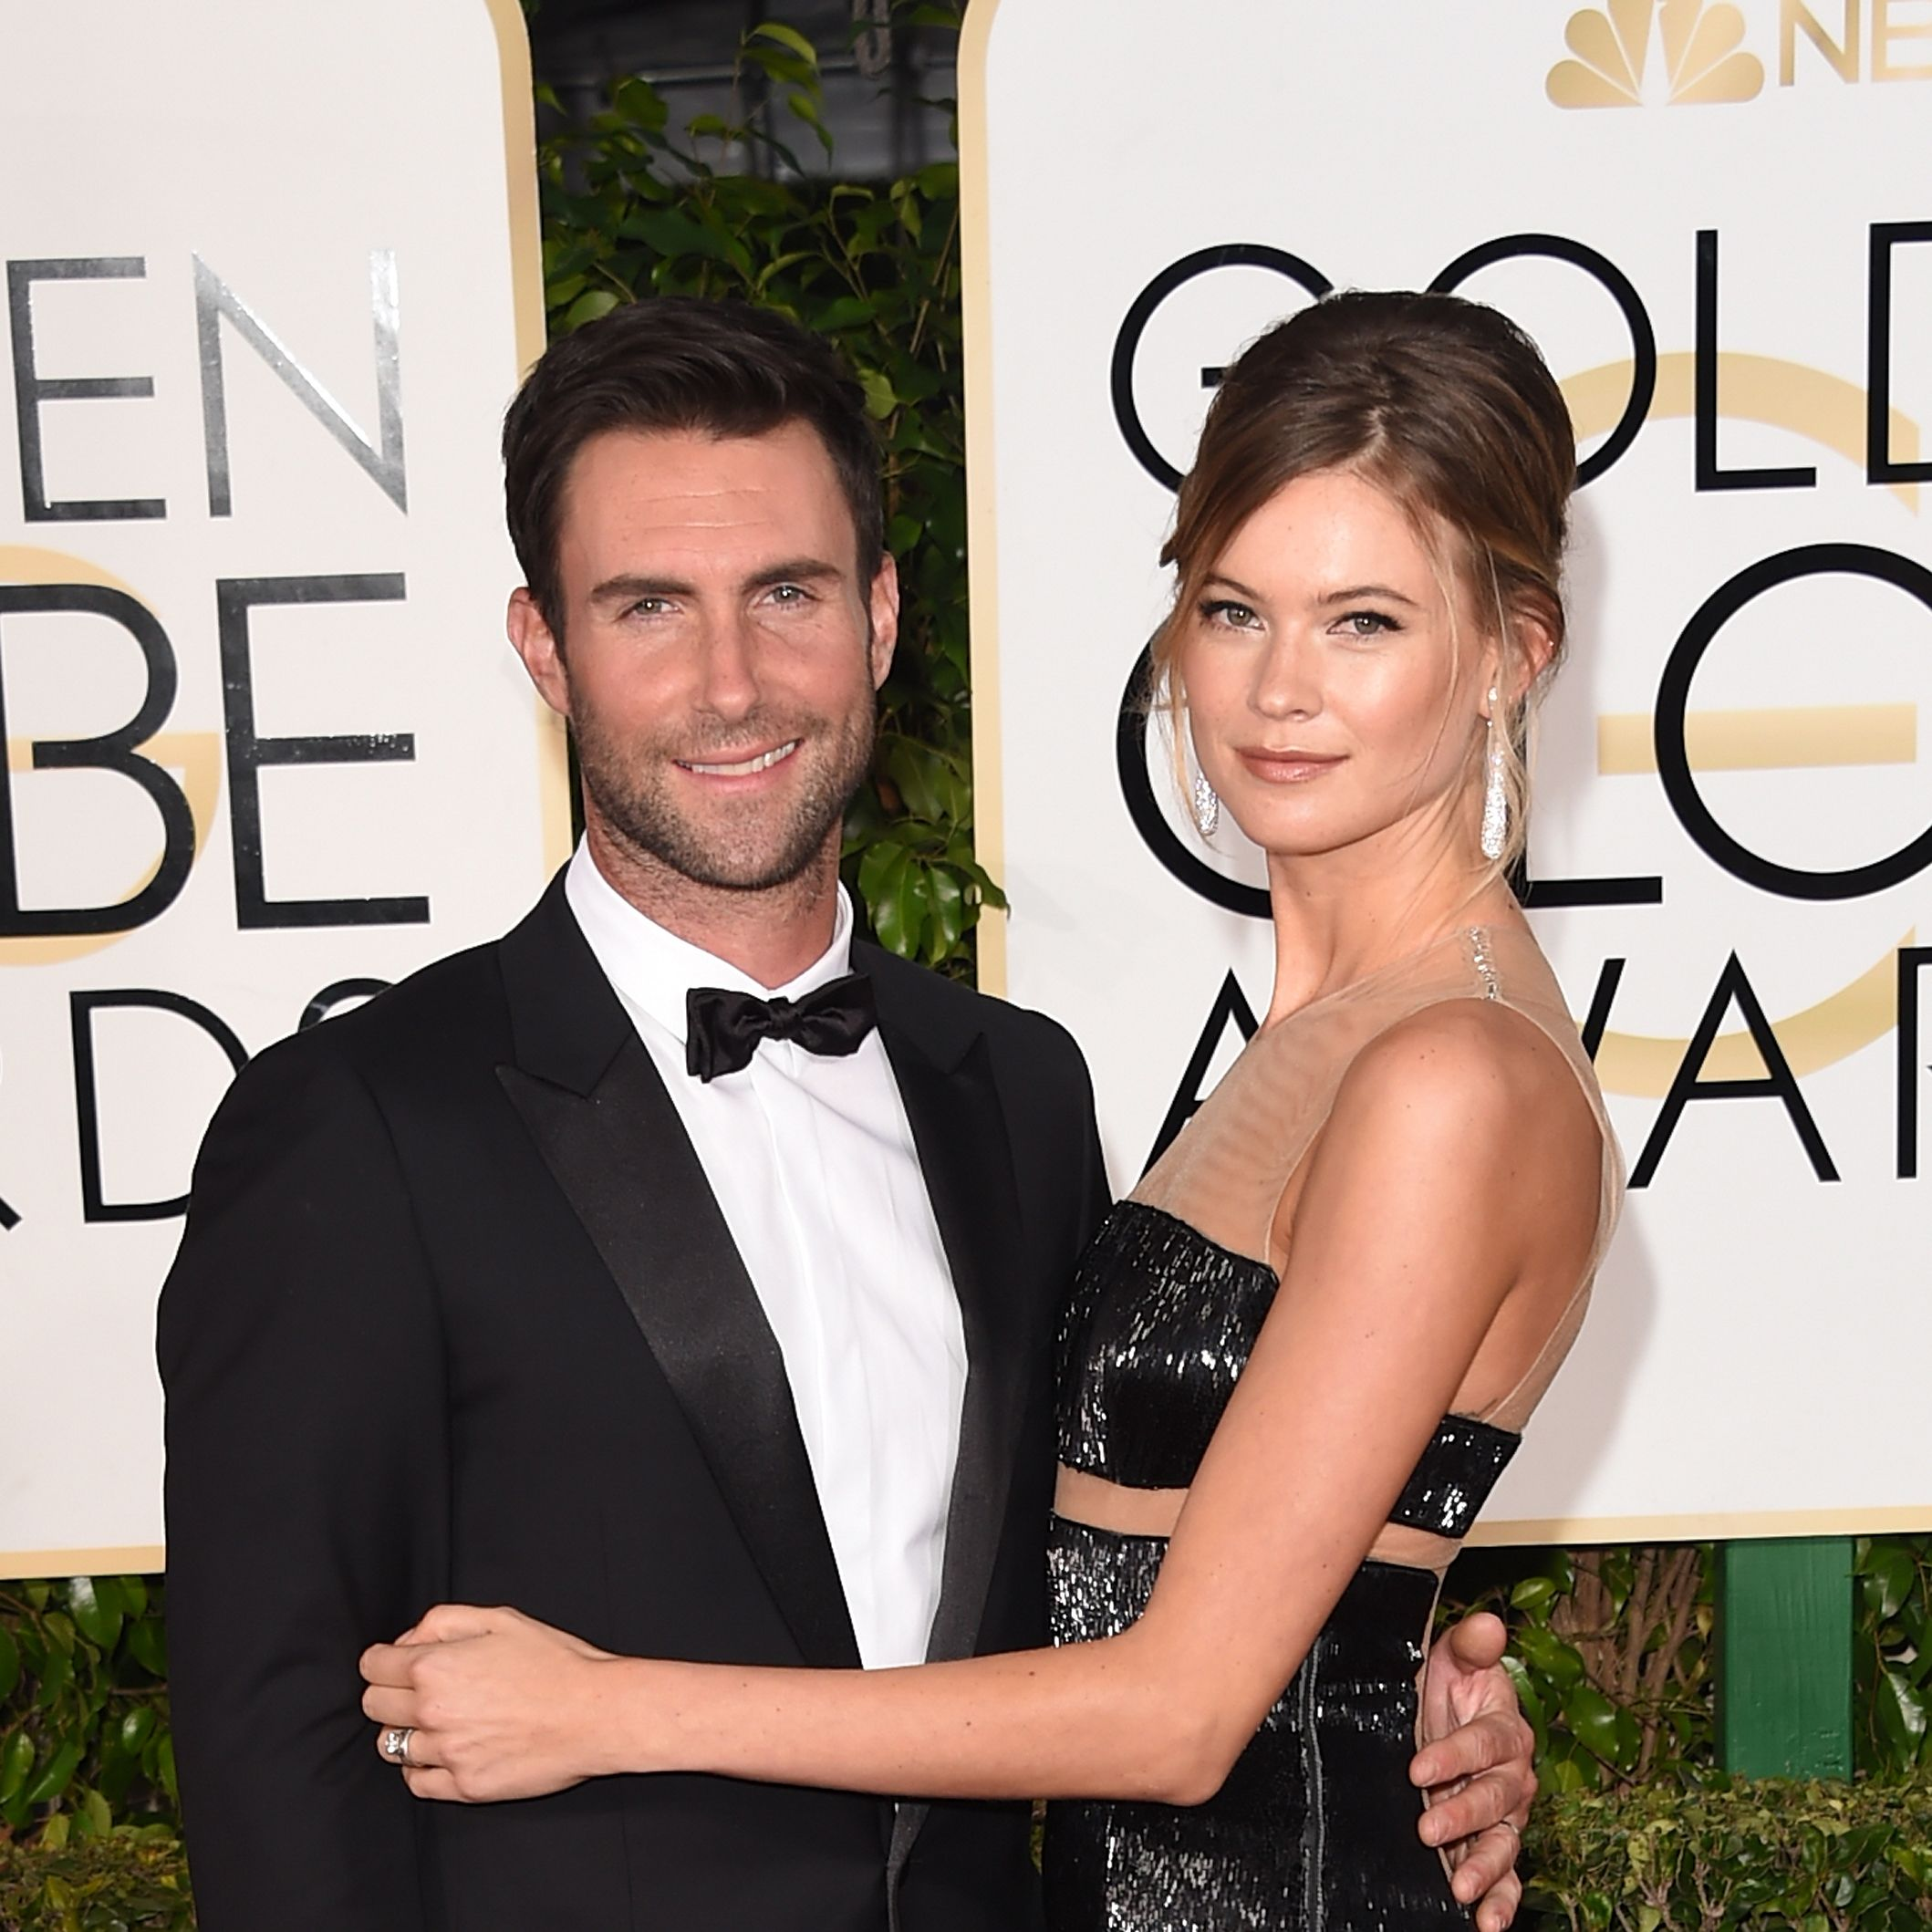 Behati Prinsloo & Adam Levine Just Threw the Sweetest Party for Their Daughter's First Birthday